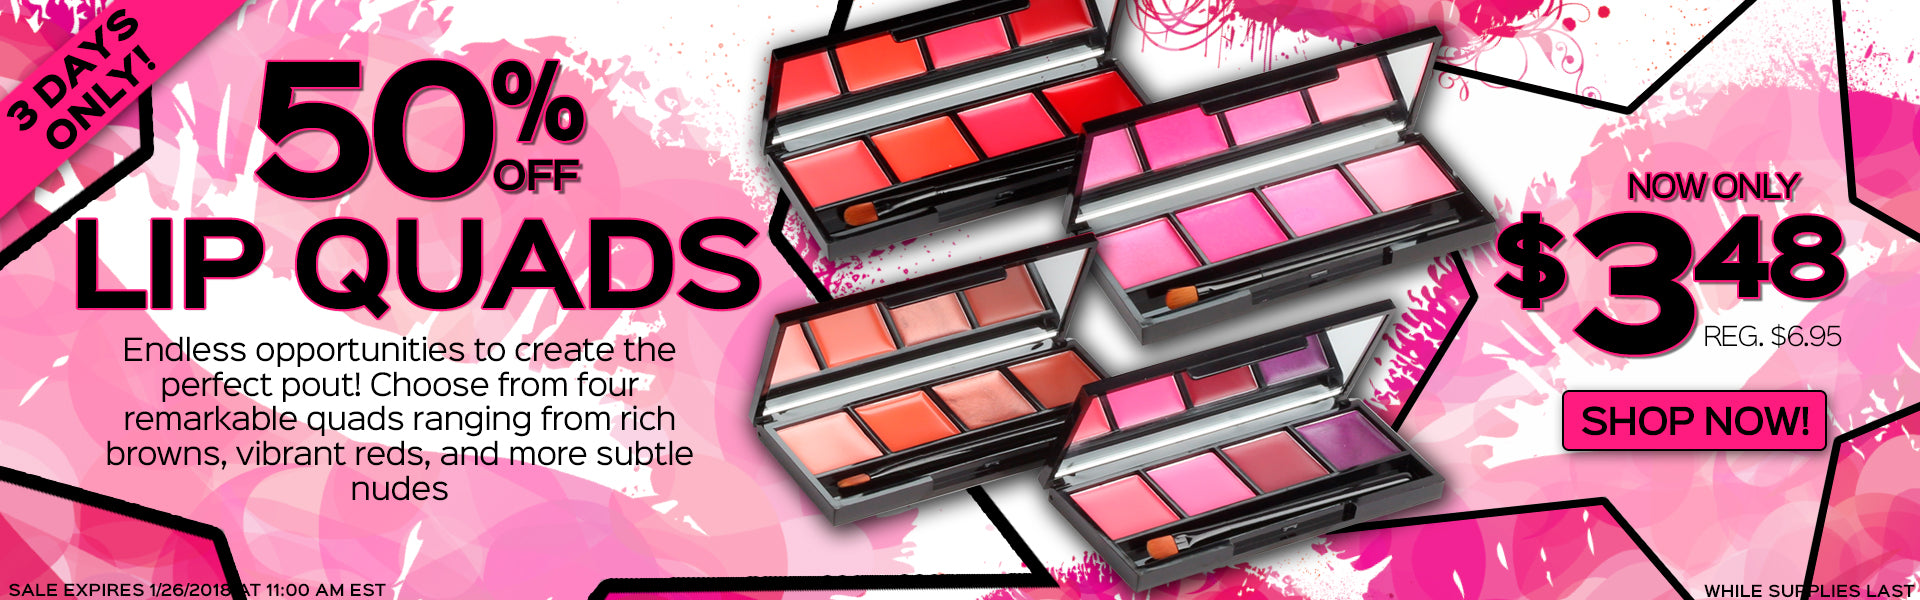 Lip Quads Now Only $3.48 each, Reg. $6.95